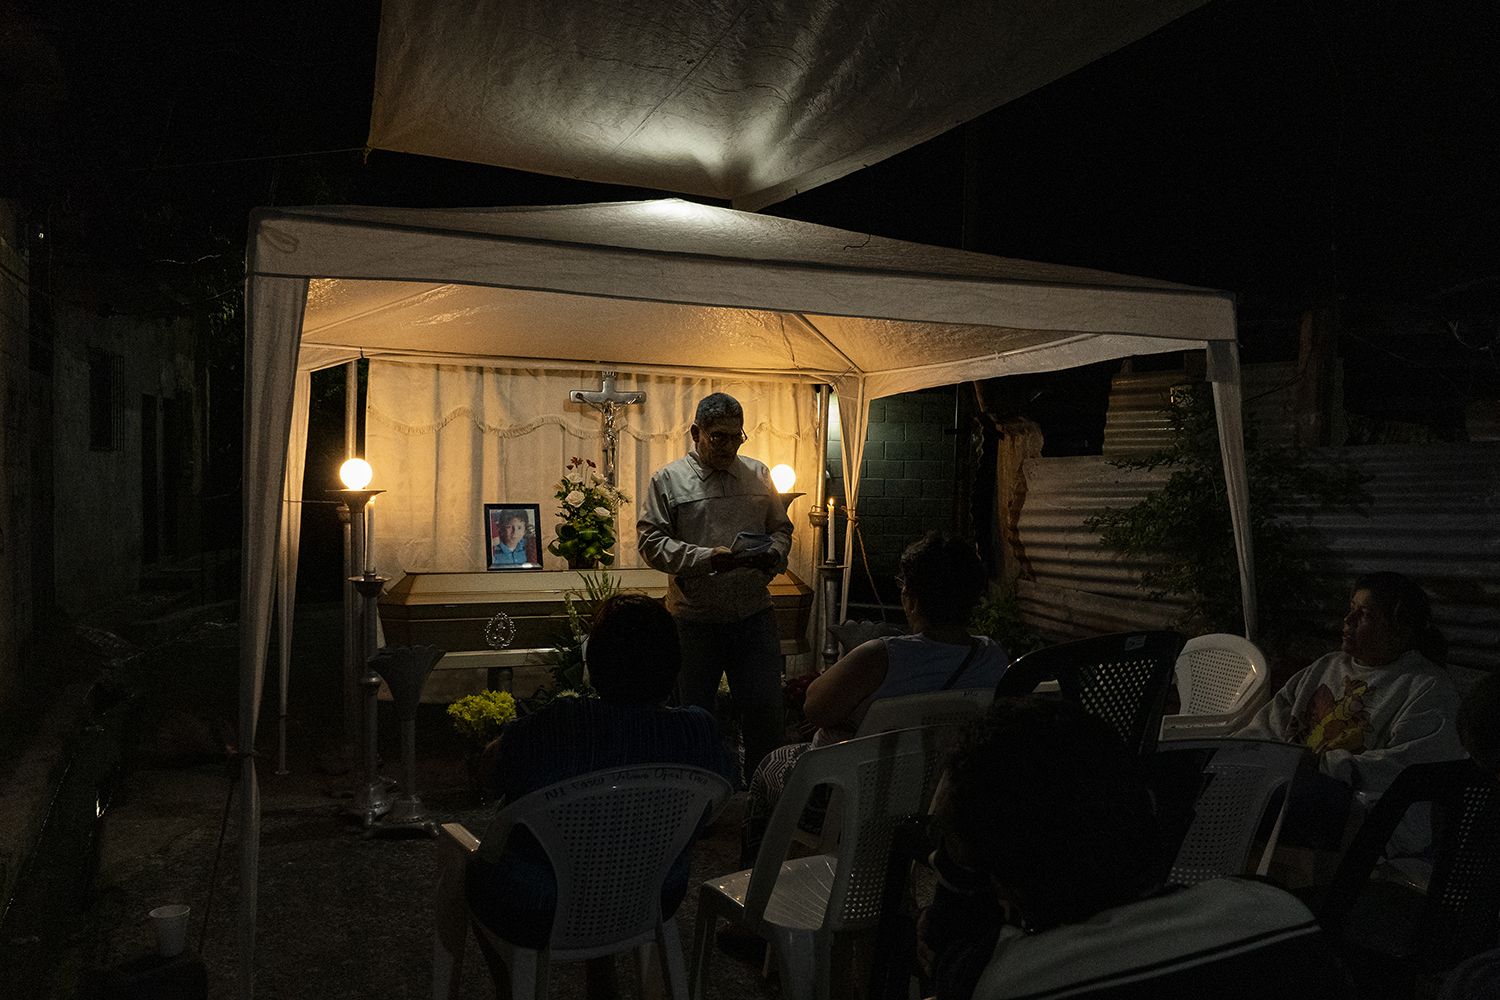 A priest reads from the Bible at the wake for 11-year-old José Luis Peréz Madrid in the Veracruz neighborhood of San Salvador on Nov. 30, 2018. The boy, who the attorney general's office says was killed in an area dominated by La 18 gang members, played with friends in a park near the demarcation line between the La 18 and MS-13 gangs before they were kidnapped by La 18. His two friends escaped, but José Luis was beaten, tortured, stabbed, and beheaded. At his wake, his family said he loved skateboarding, soccer, and the new President Nayib Bukele.